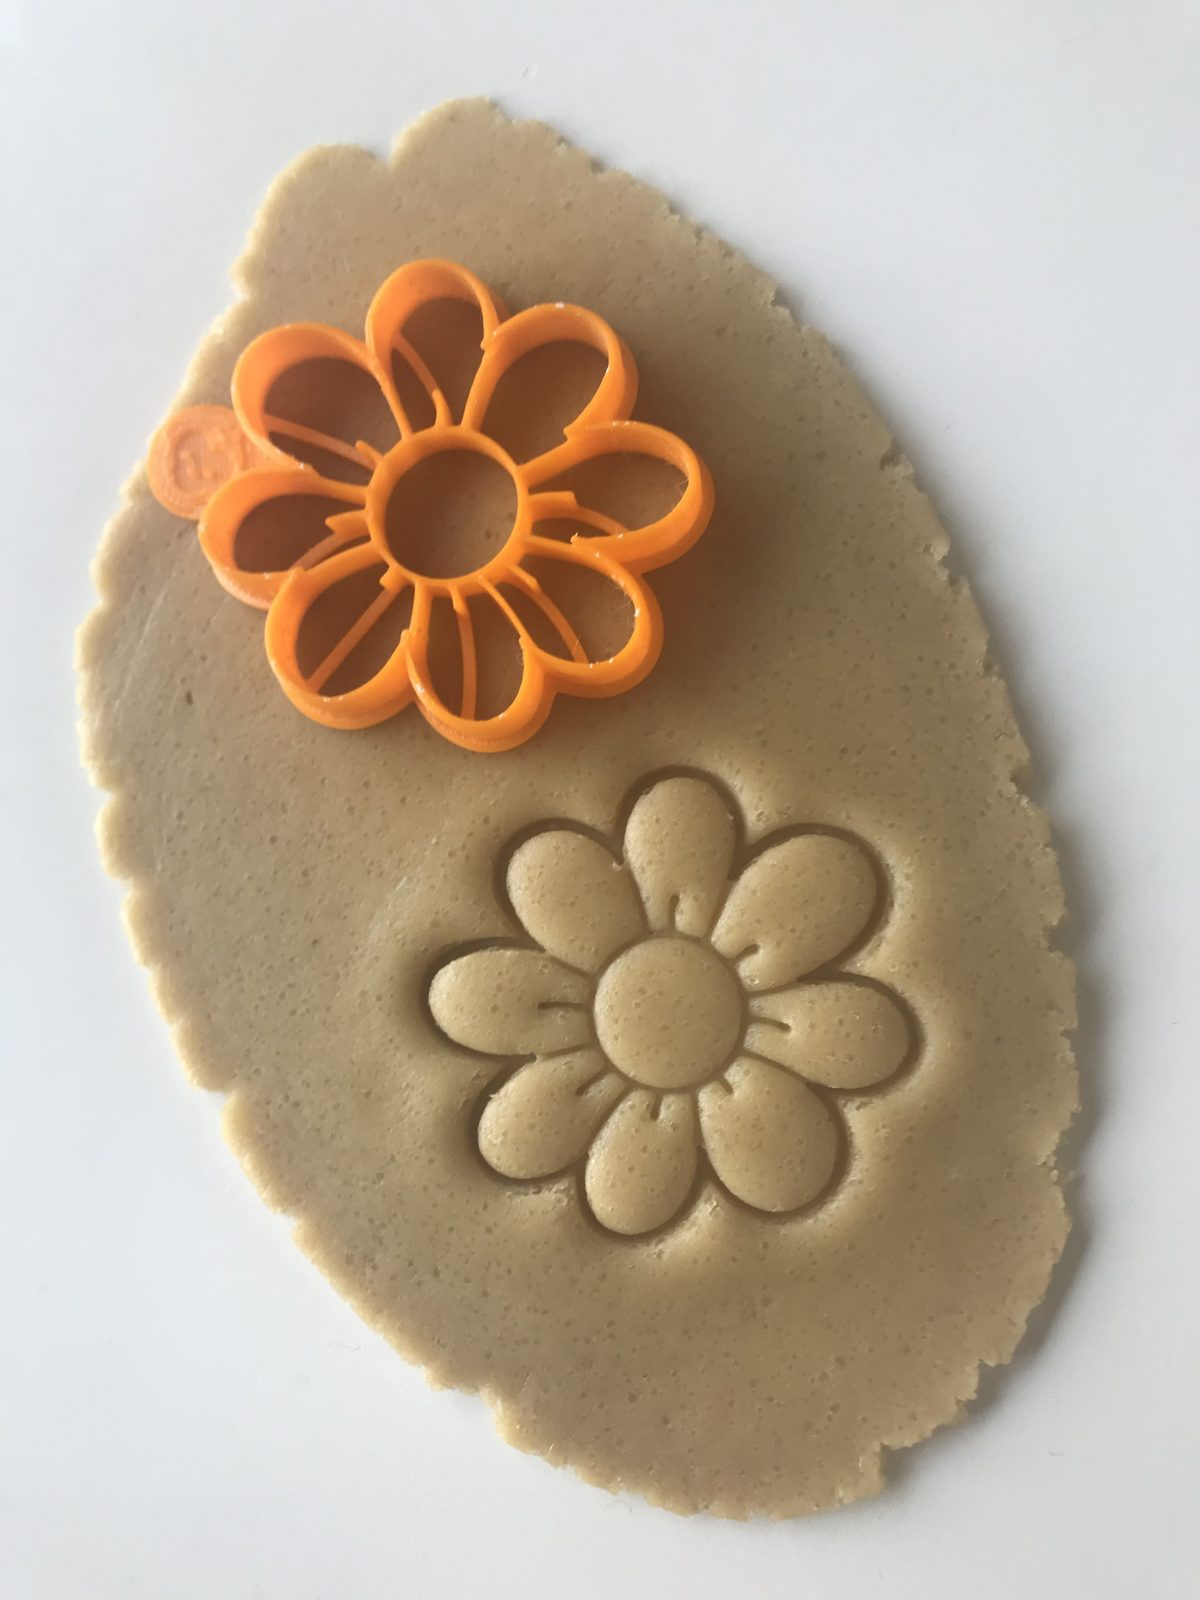 Eight Petal Flower Cookie Cutter